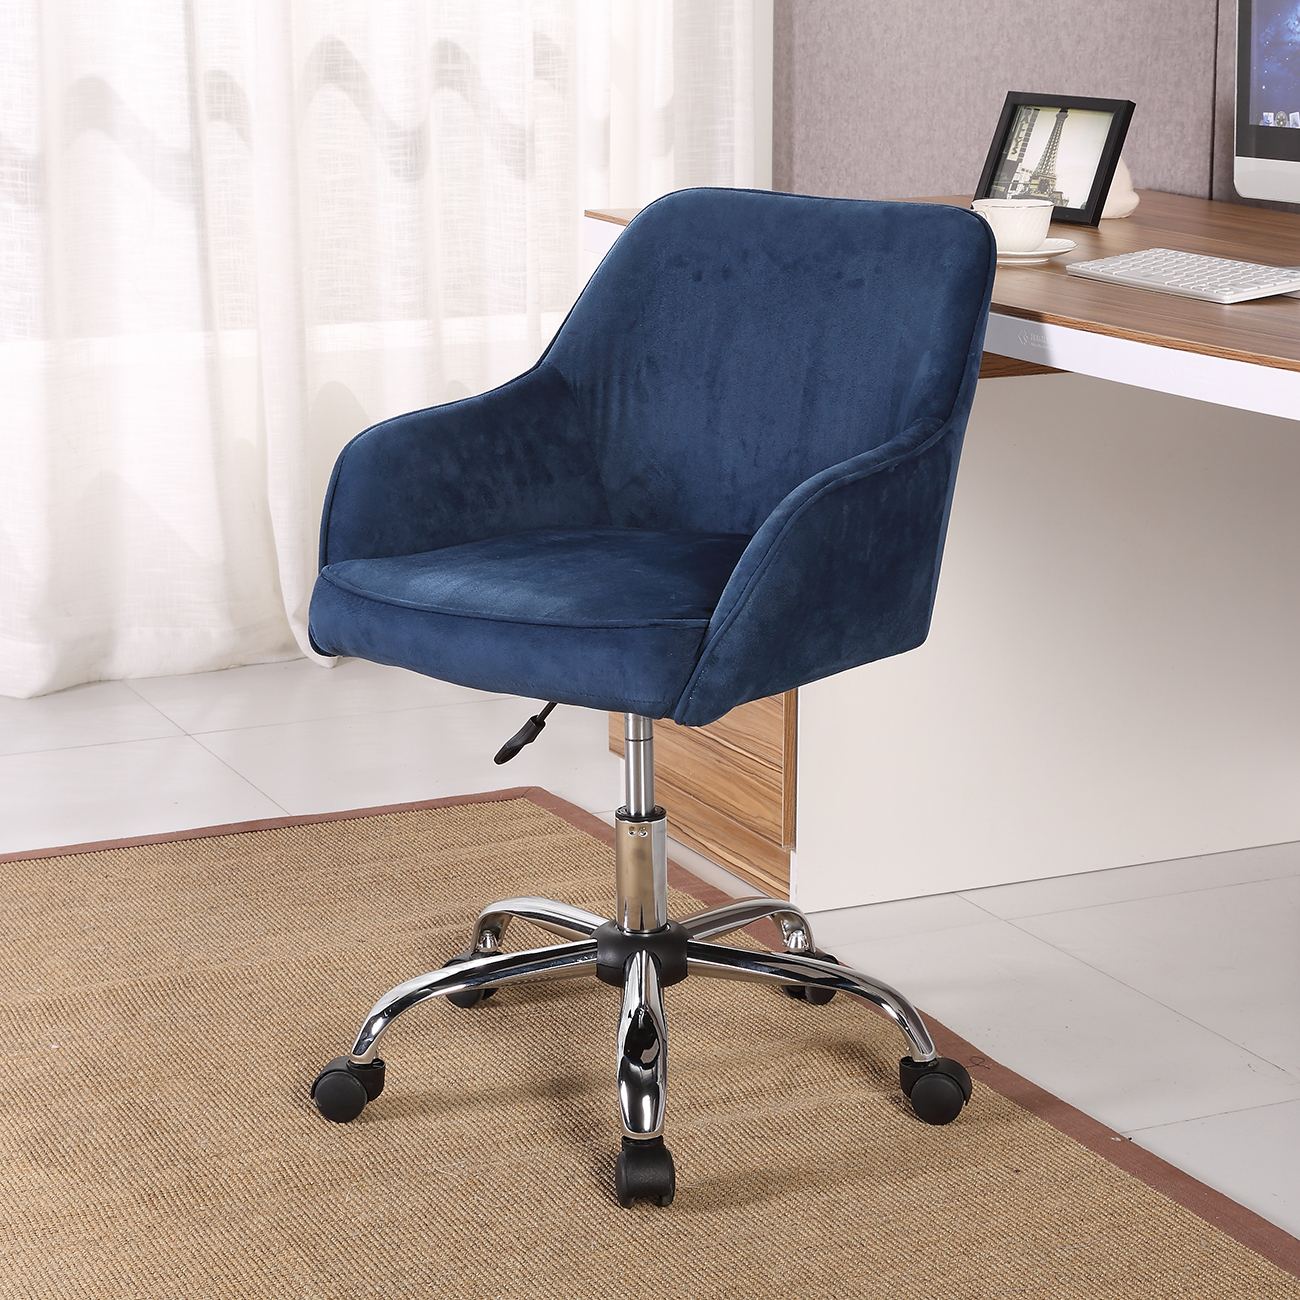 Velvet Desk Chair Modern Office Chair Task Desk Adjustable Swivel Height W